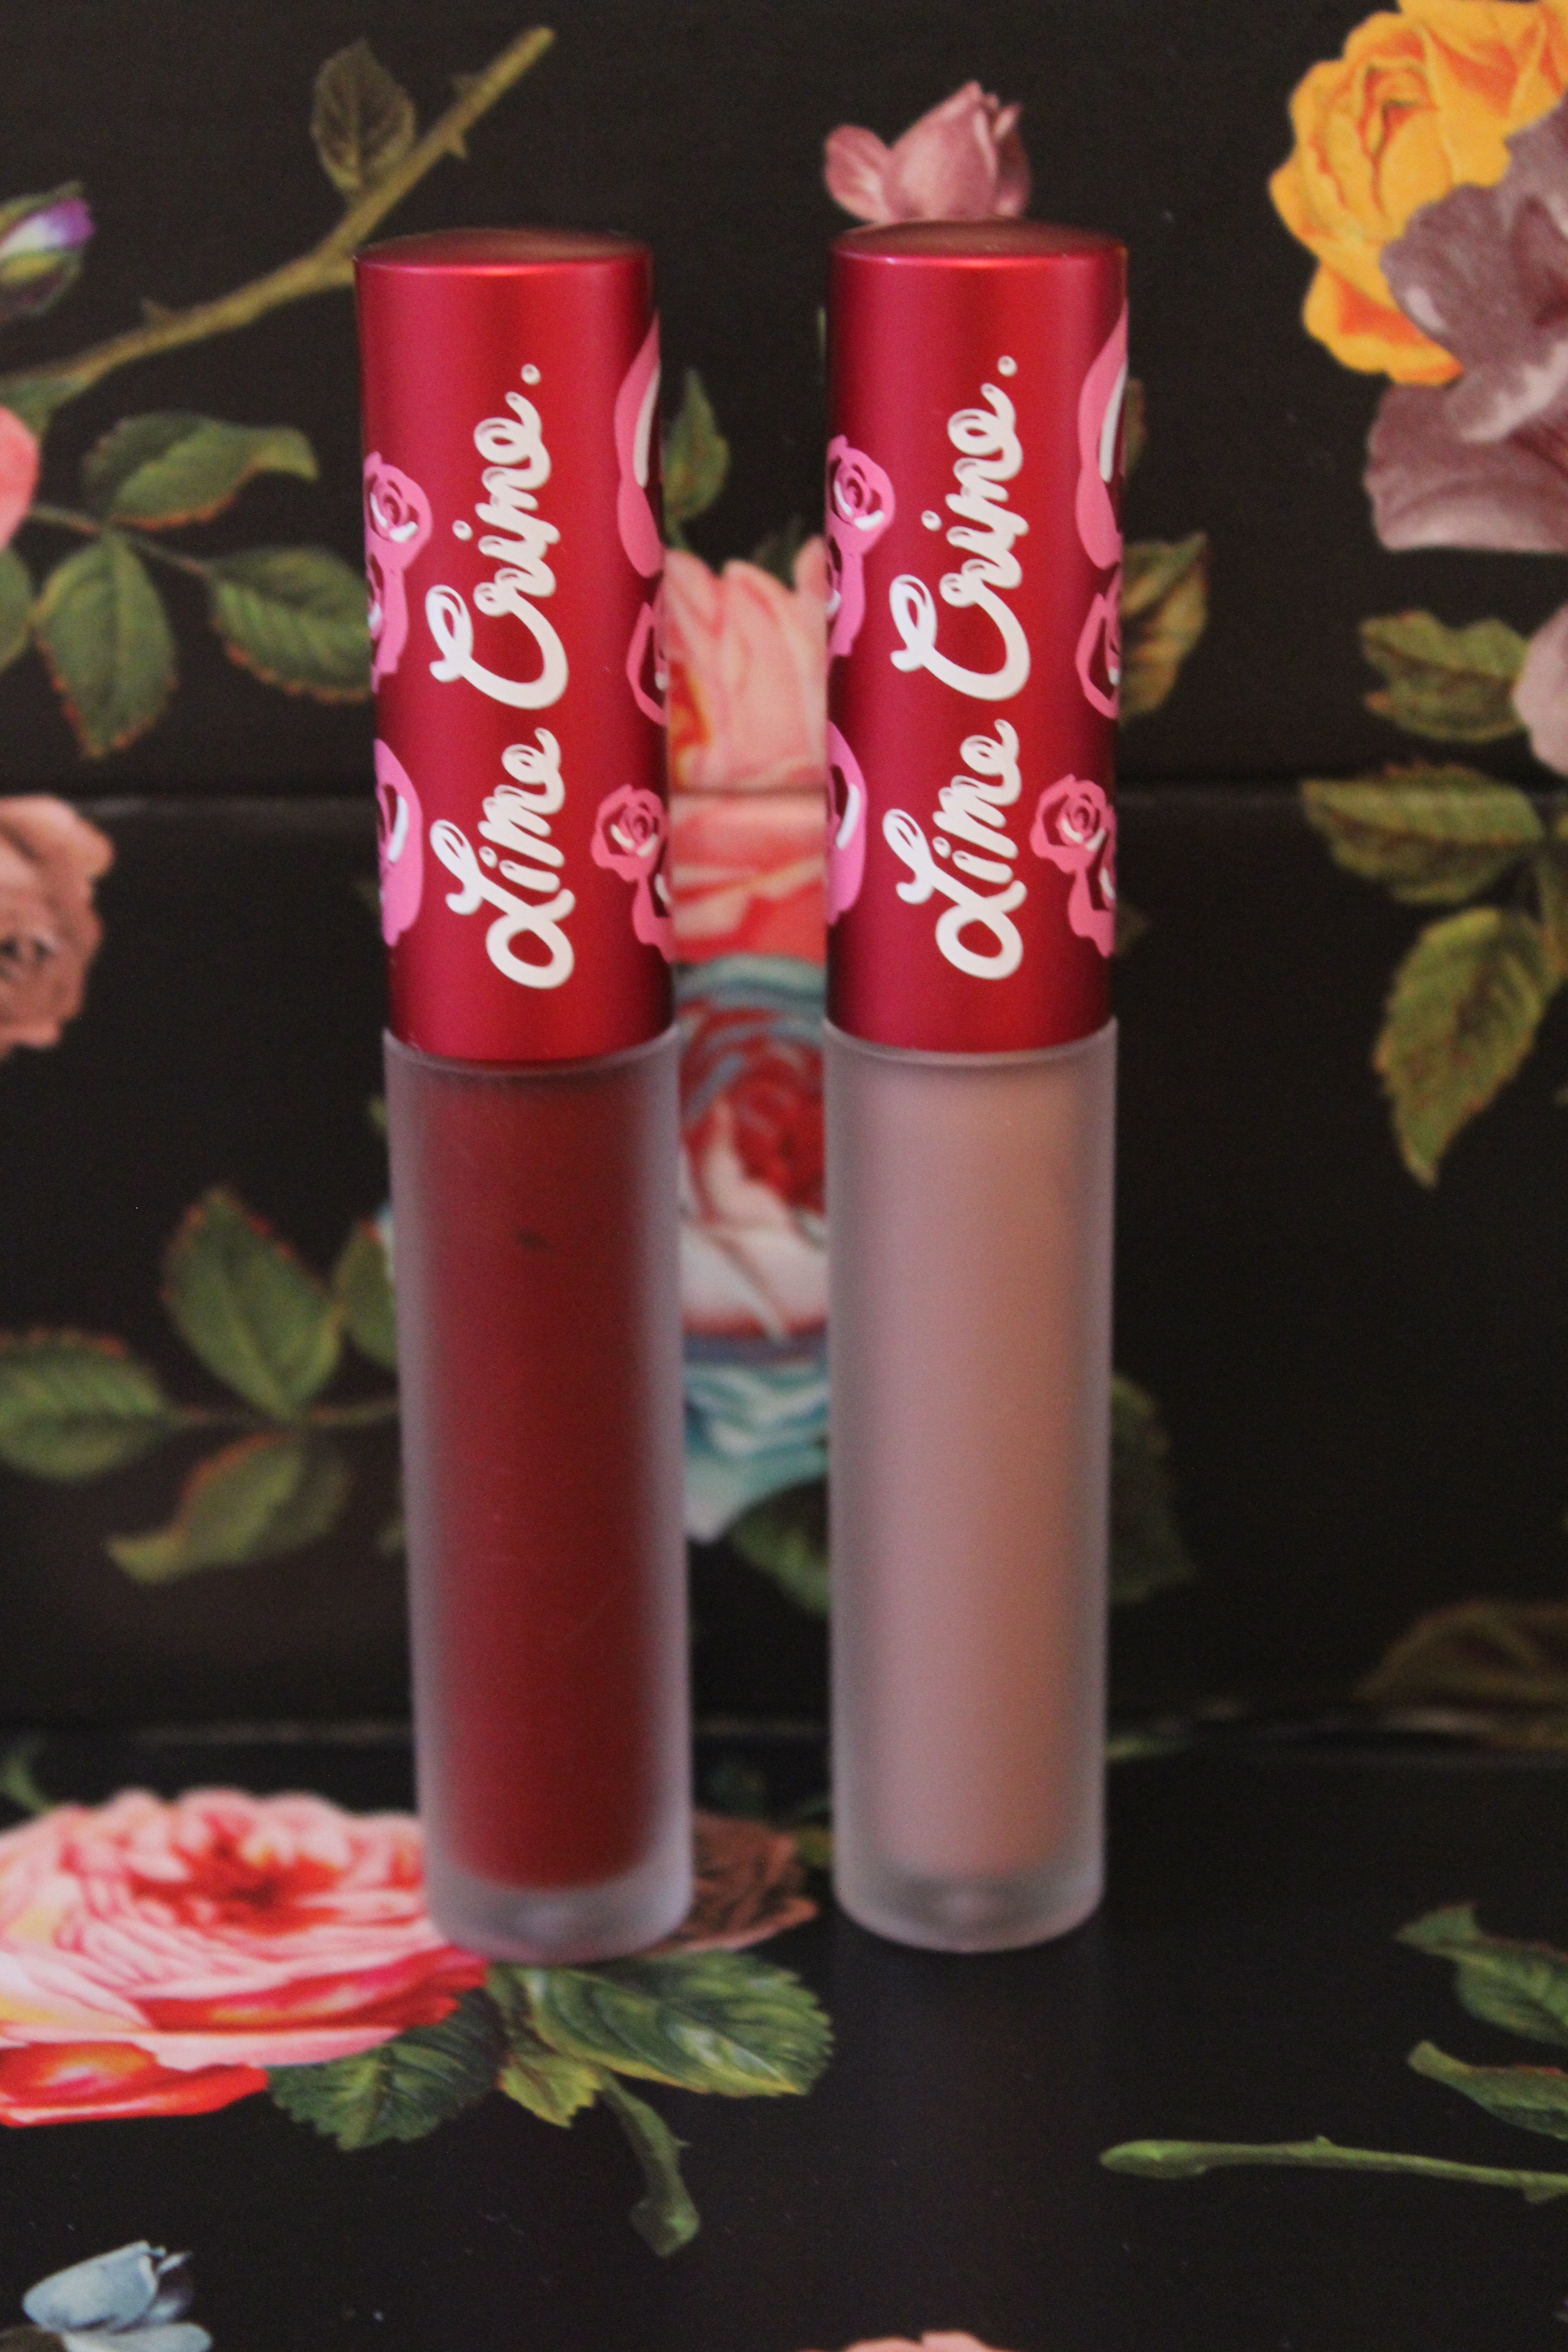 Lime Crime Velvetines Review Wicked Cashmere Jordans All Shade There Has Been So Much Hype Over The But Because You Have To Purchase Them From Their Us Website I Kept Putting It Off Until They